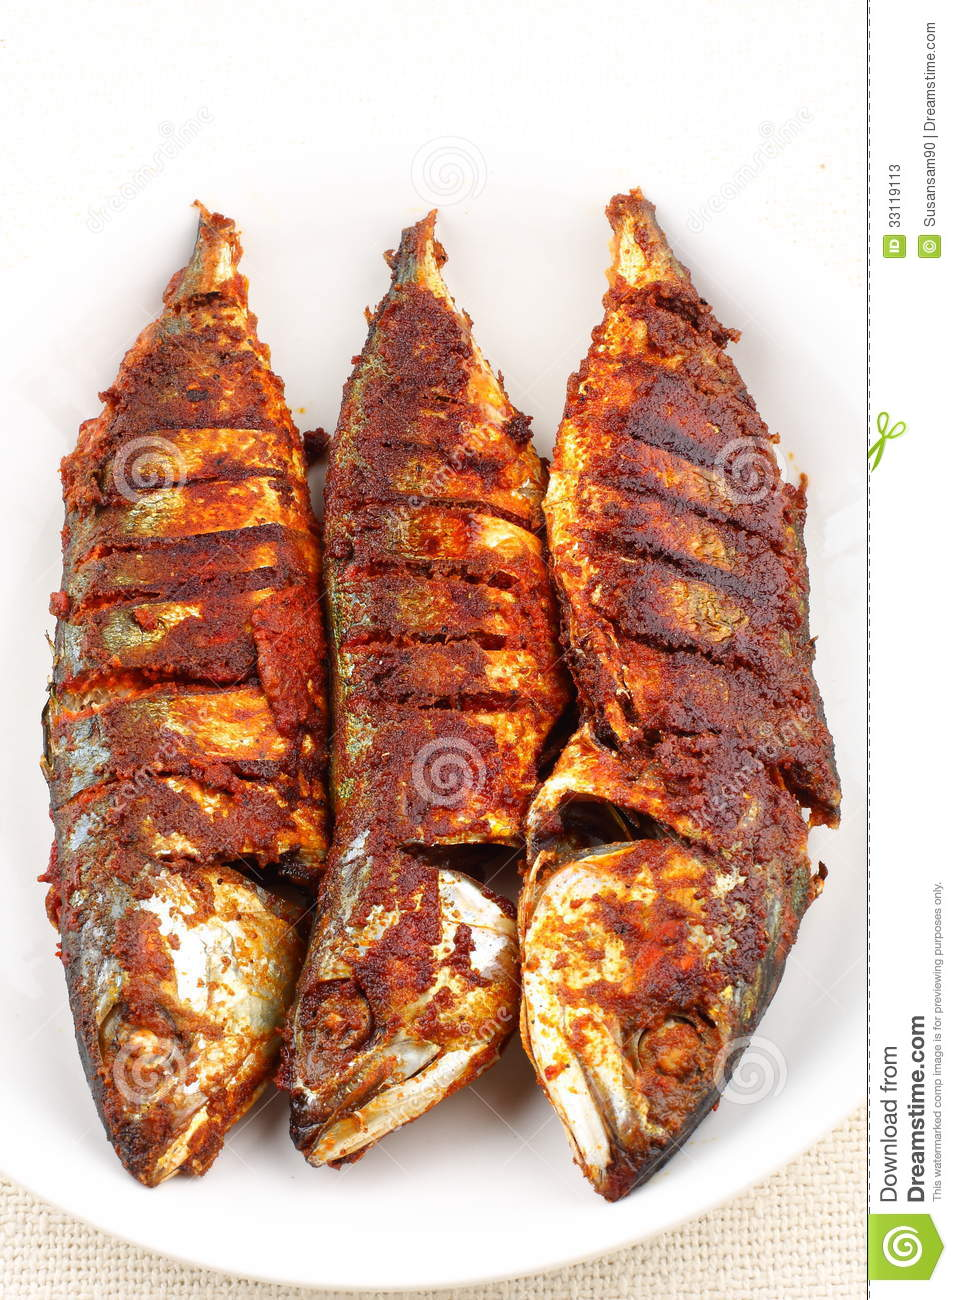 fish-fry-indian-style-fried-spices-33119113.jpg